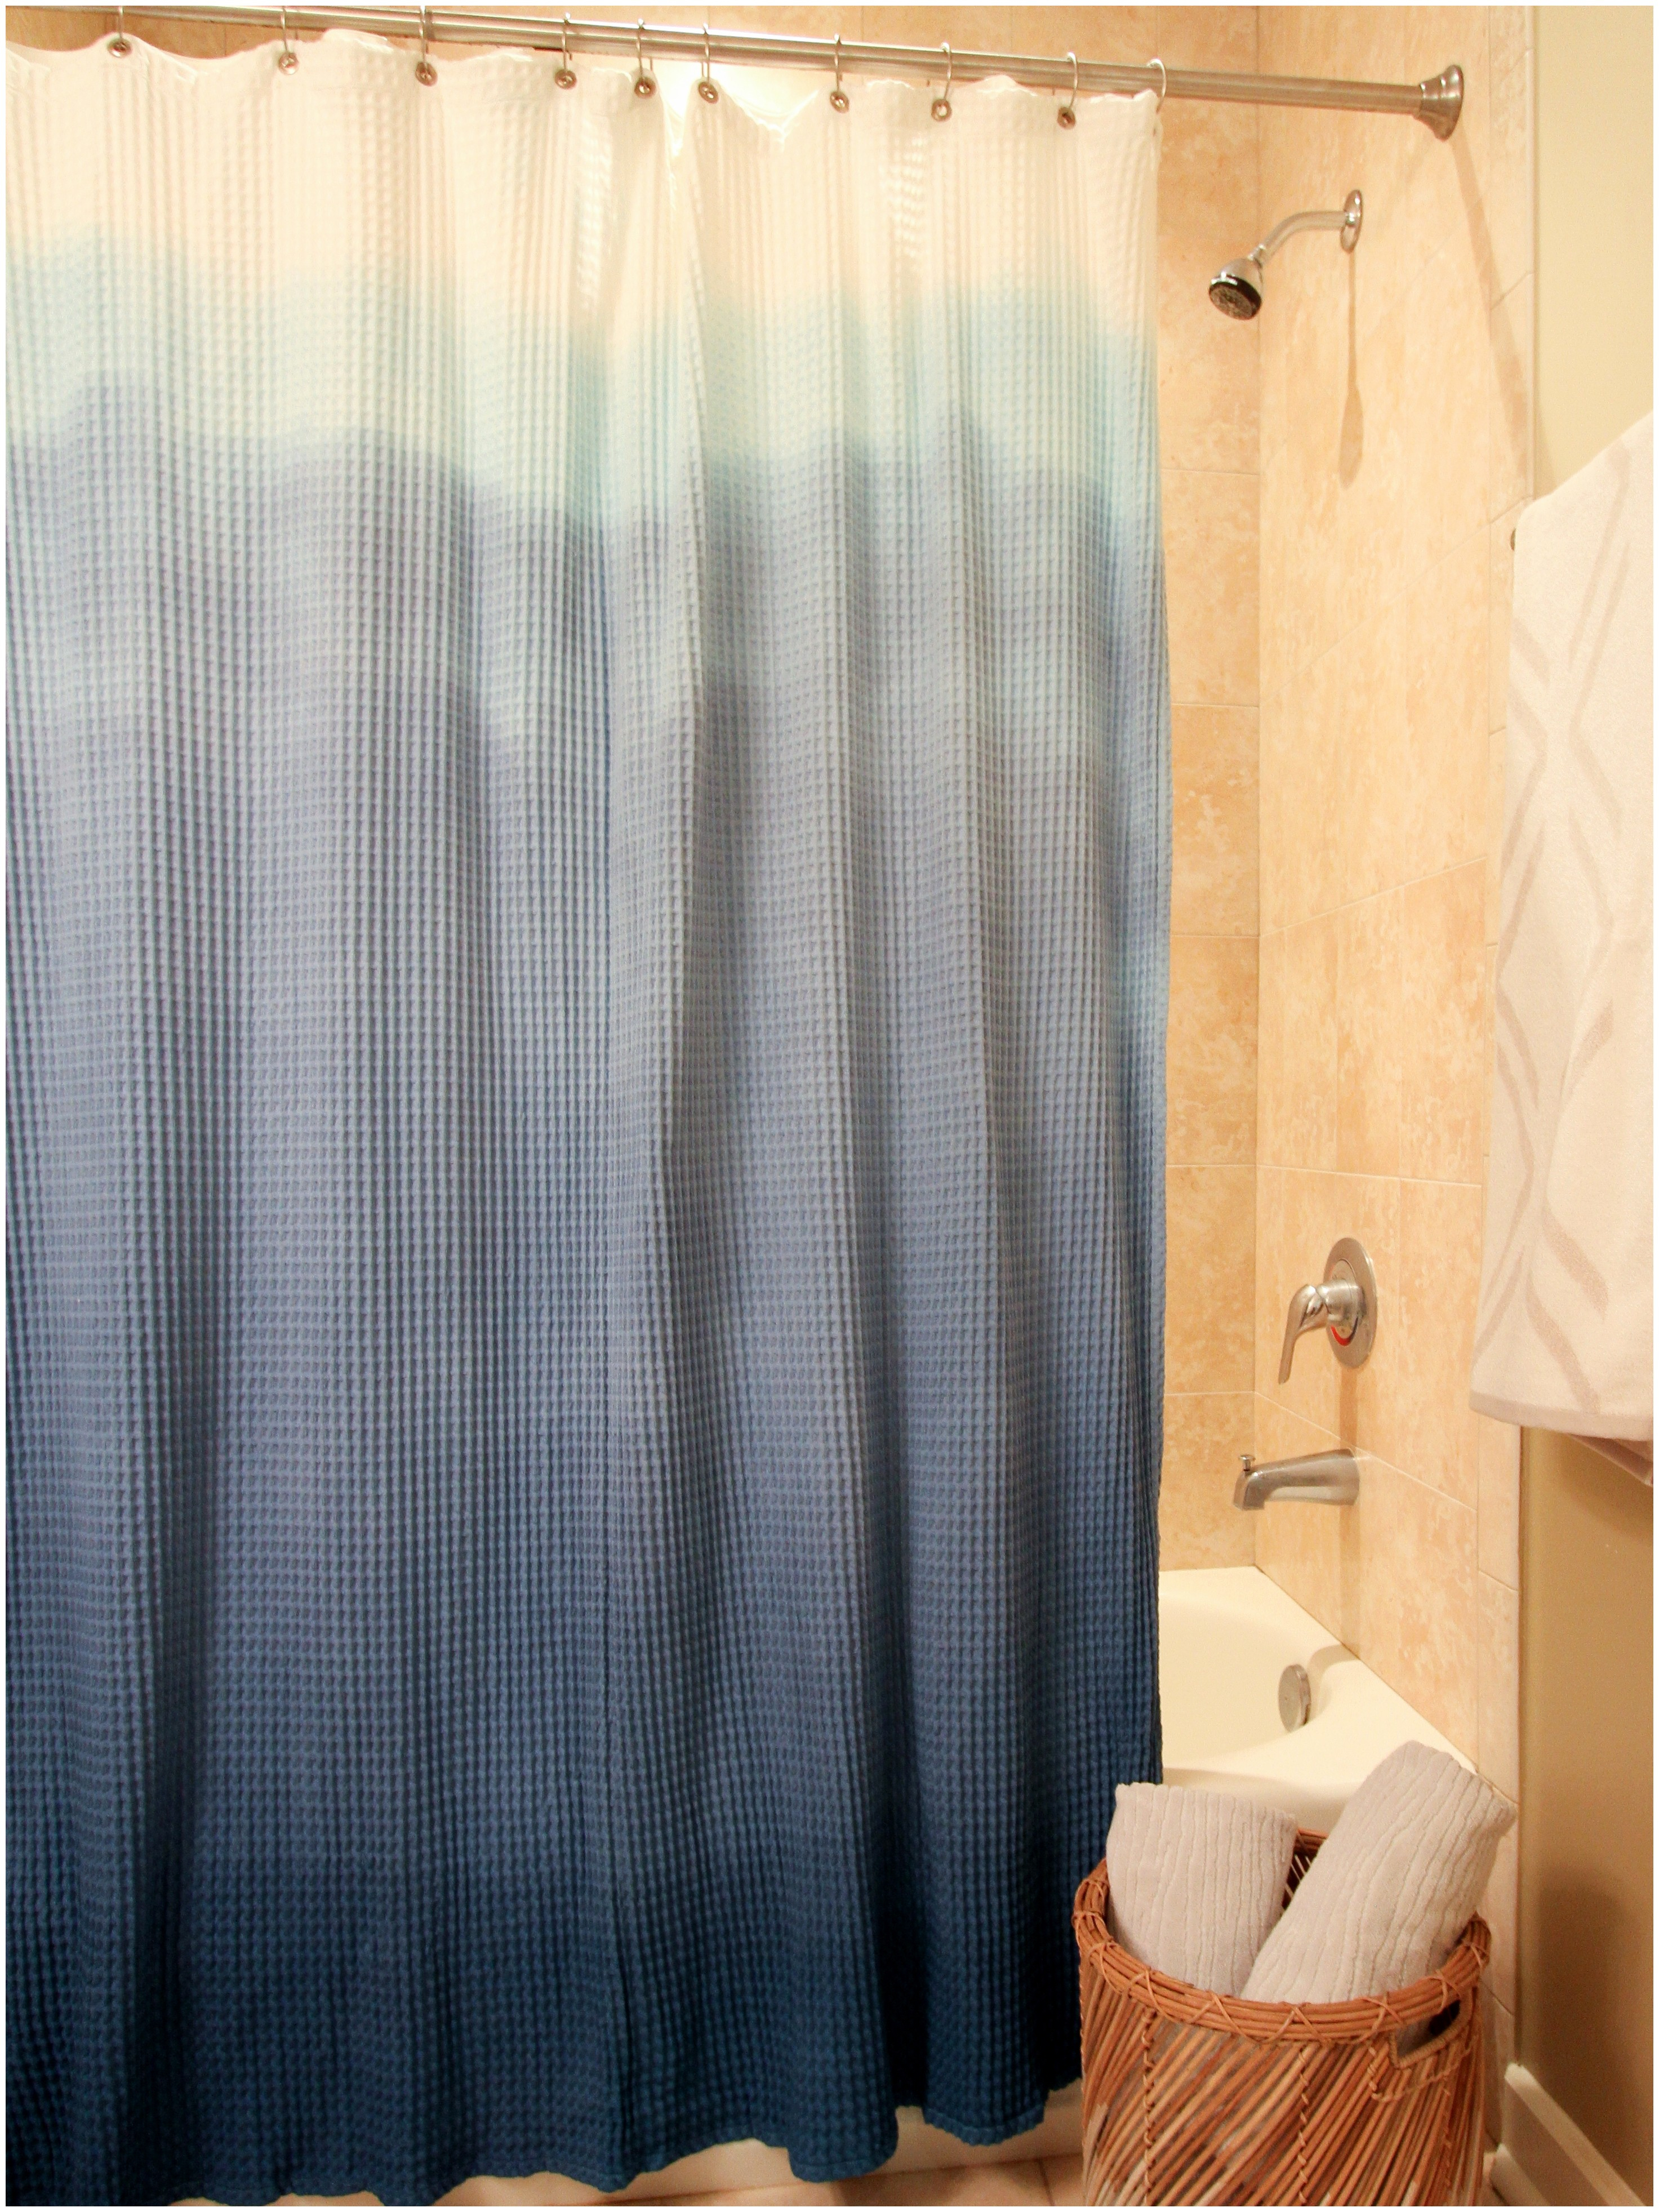 7 foot shower curtain. Fruitesborras 100 7 Foot Shower Curtain Images The Best With Regard To Size  2945 X 3927 Gucci Sets Curtains Ideas